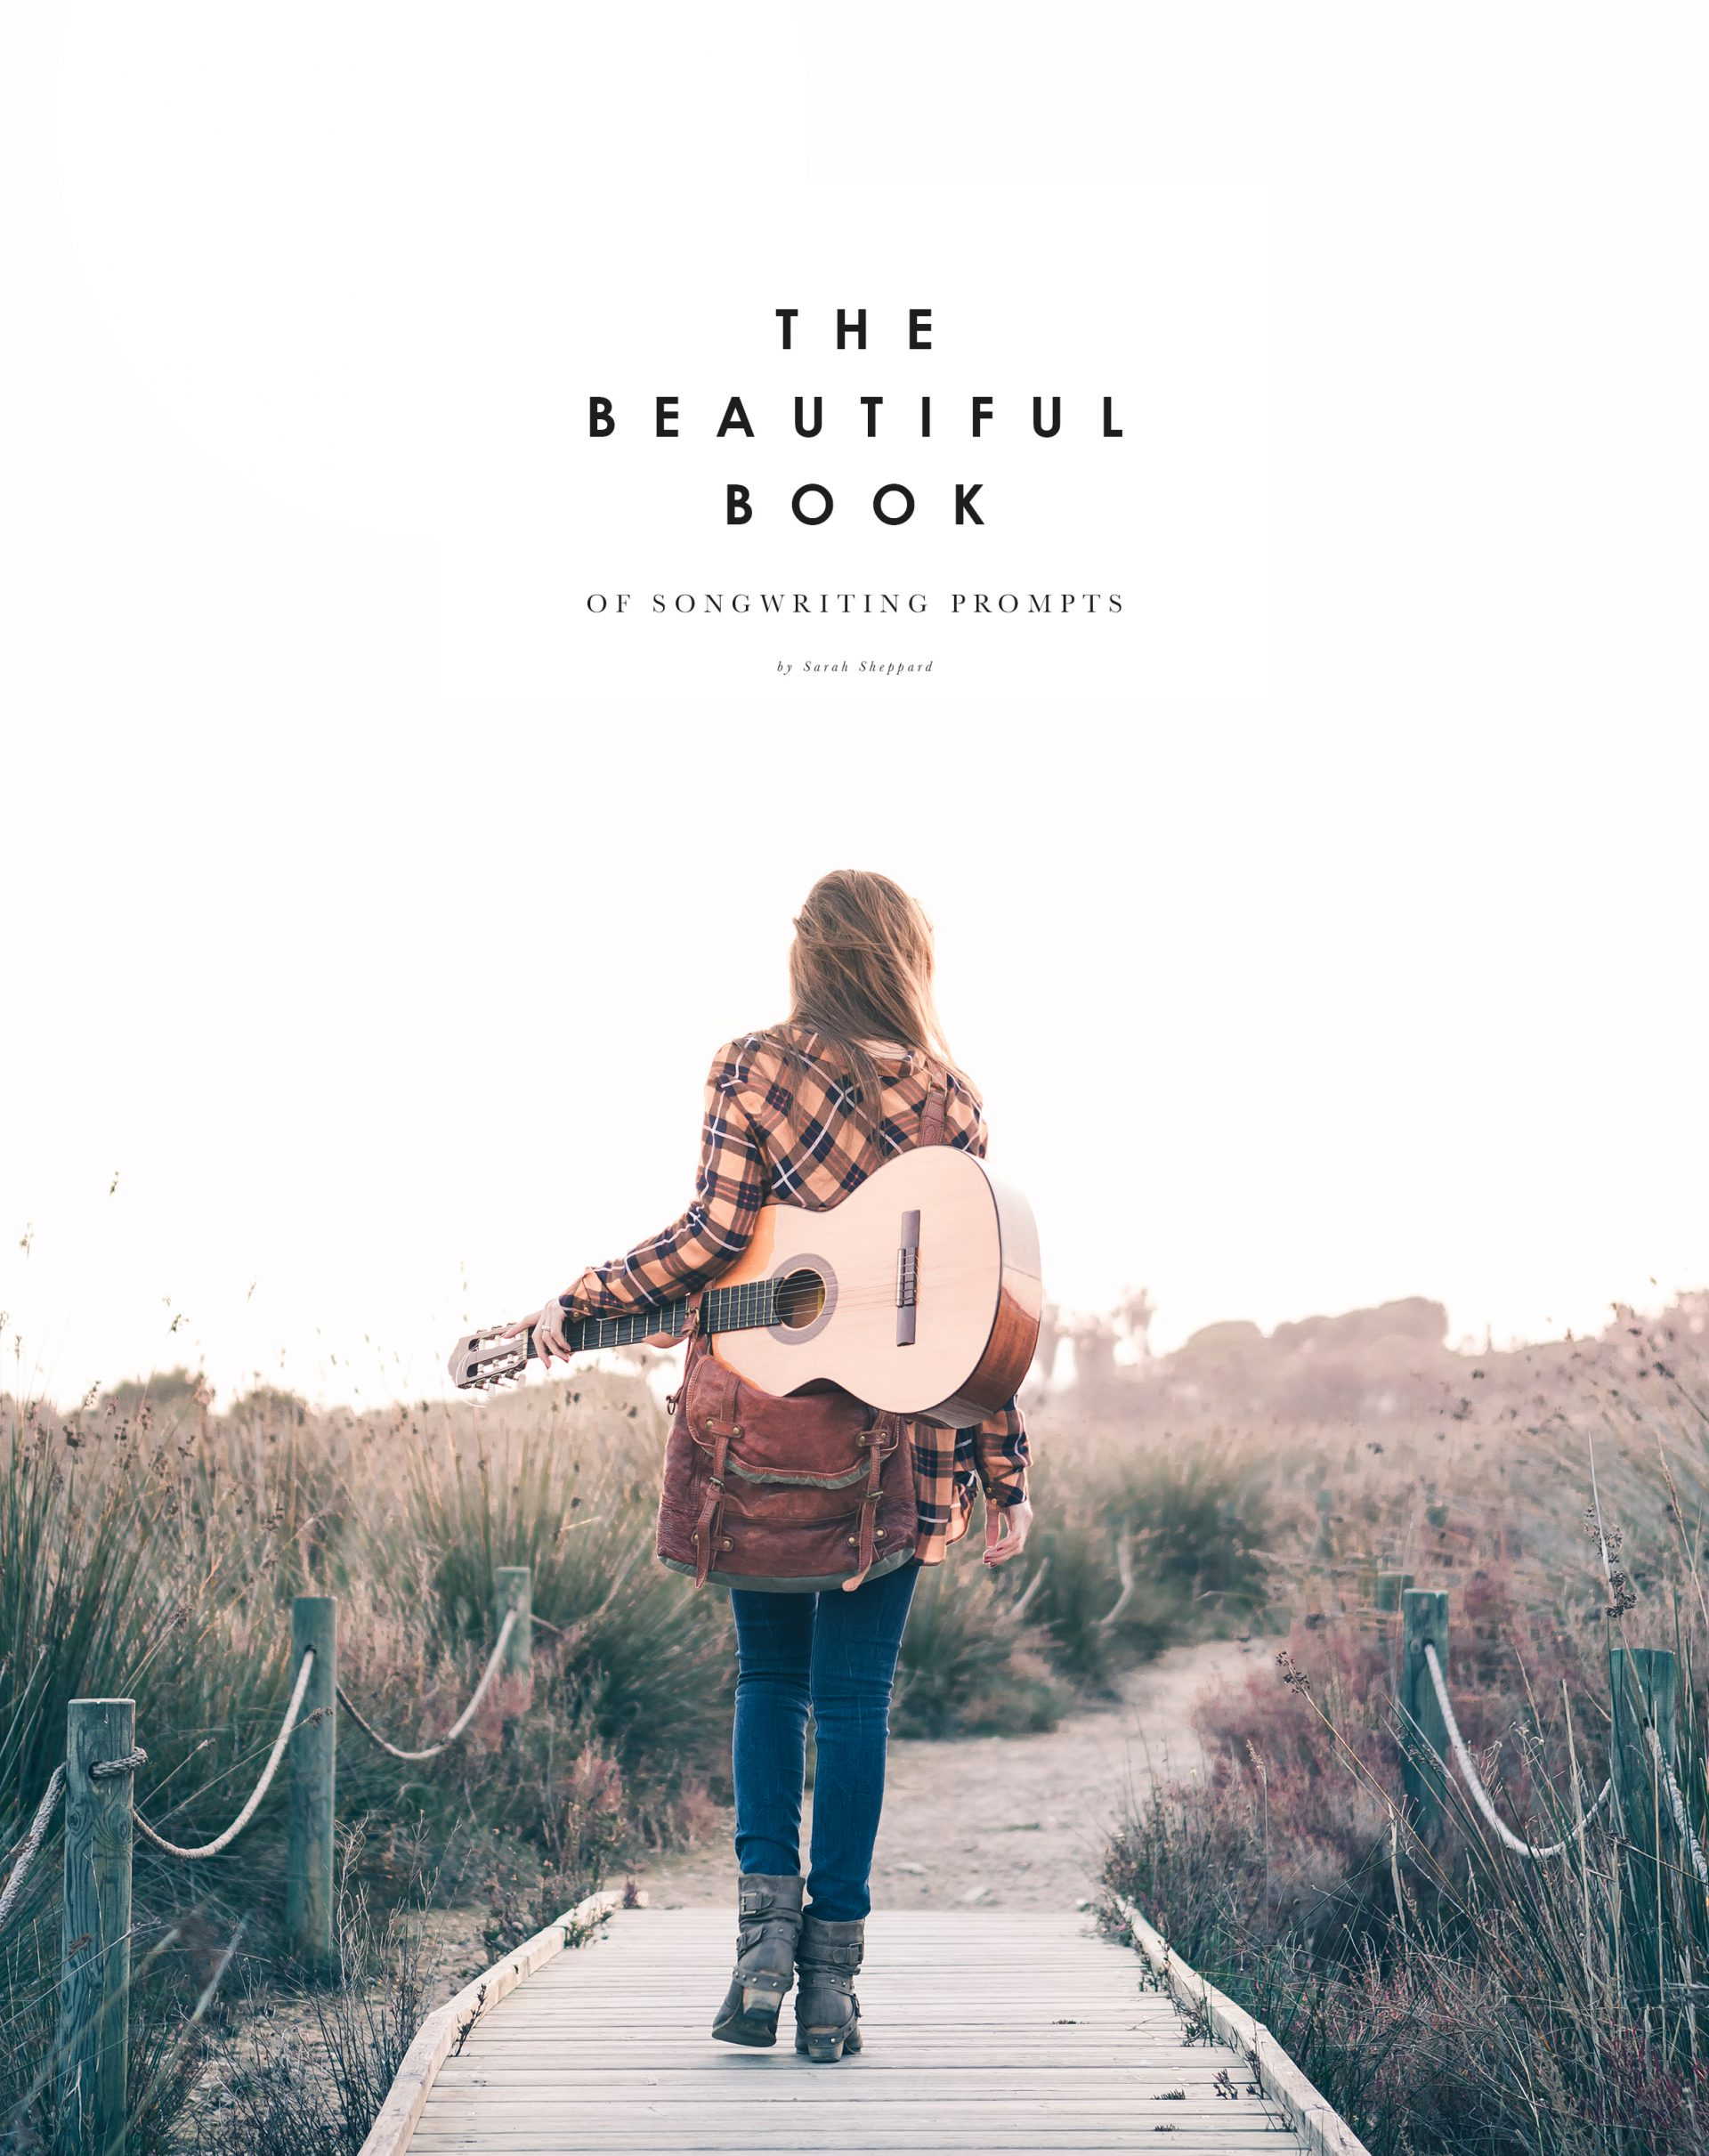 The Beautiful Book of Songwriting Prompts - Songwriting prompts to inspire the contemporary songwriter.